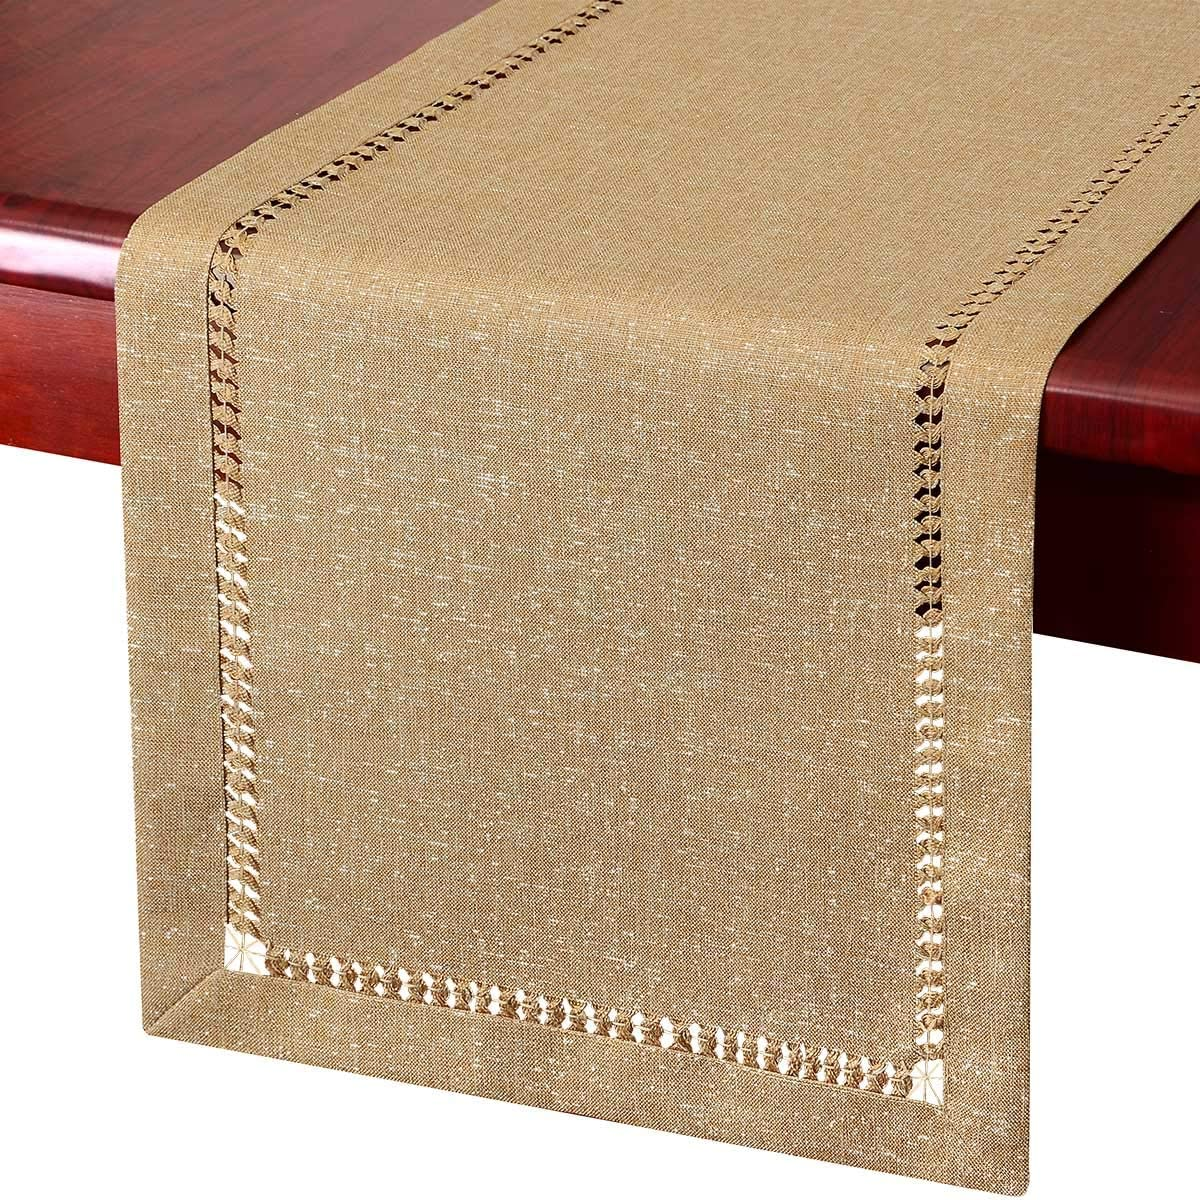 Grelucgo Handcrafted Solid Color Dining Table Runner Dresser Scarf Double-Hemstitched Aqua, 14 x 48